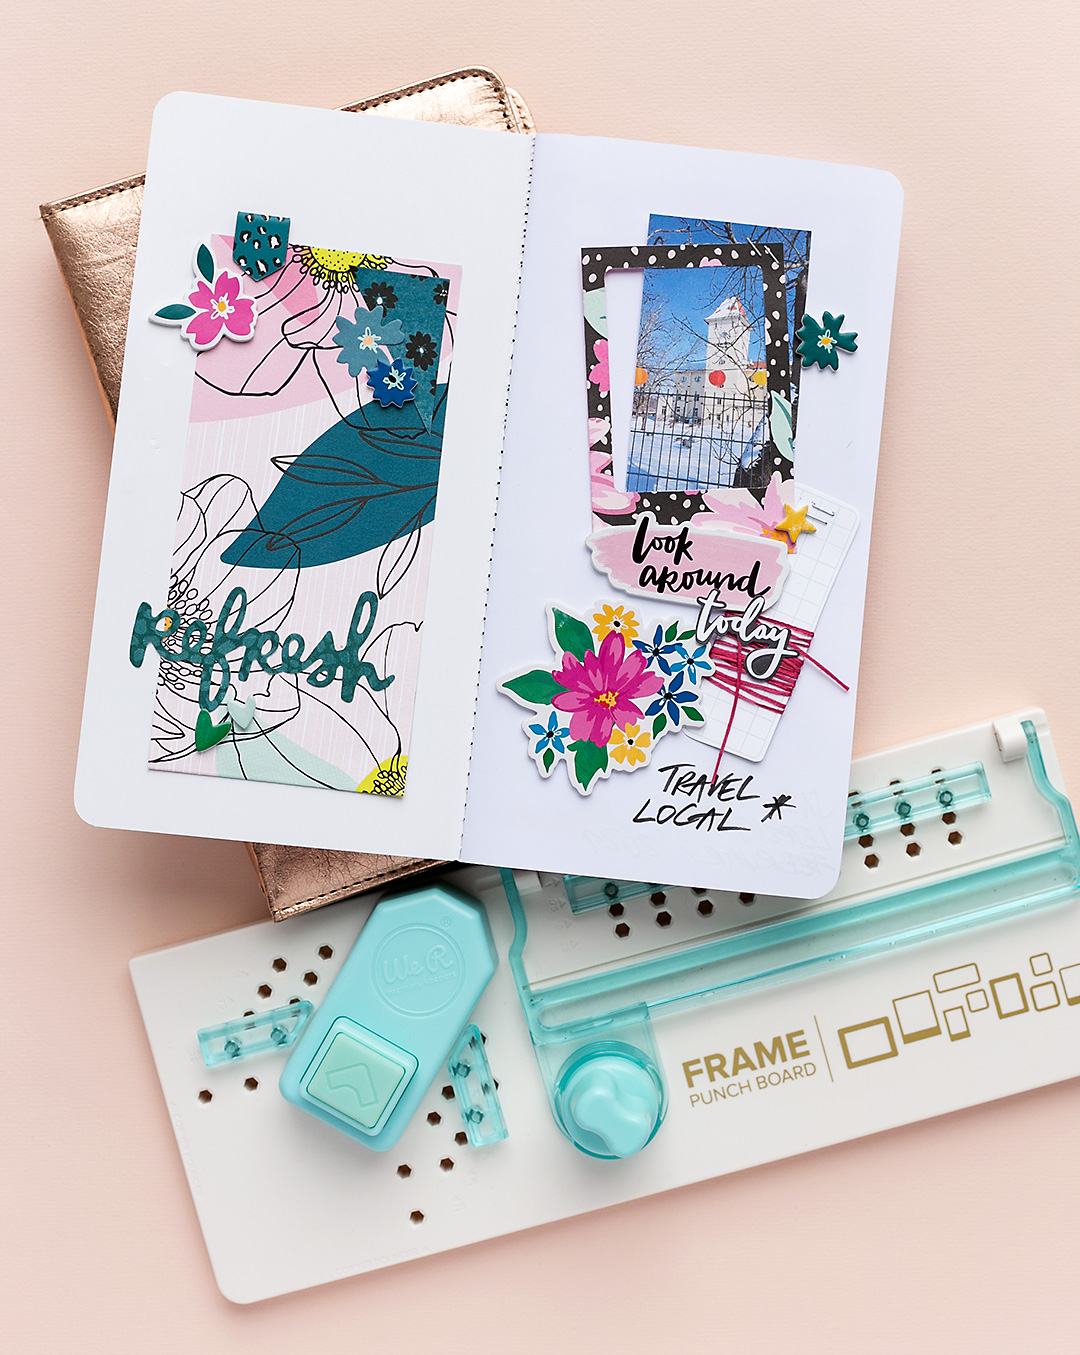 Journal spread with frames, photo and the Frame Punch Board by We R Memory Keepers